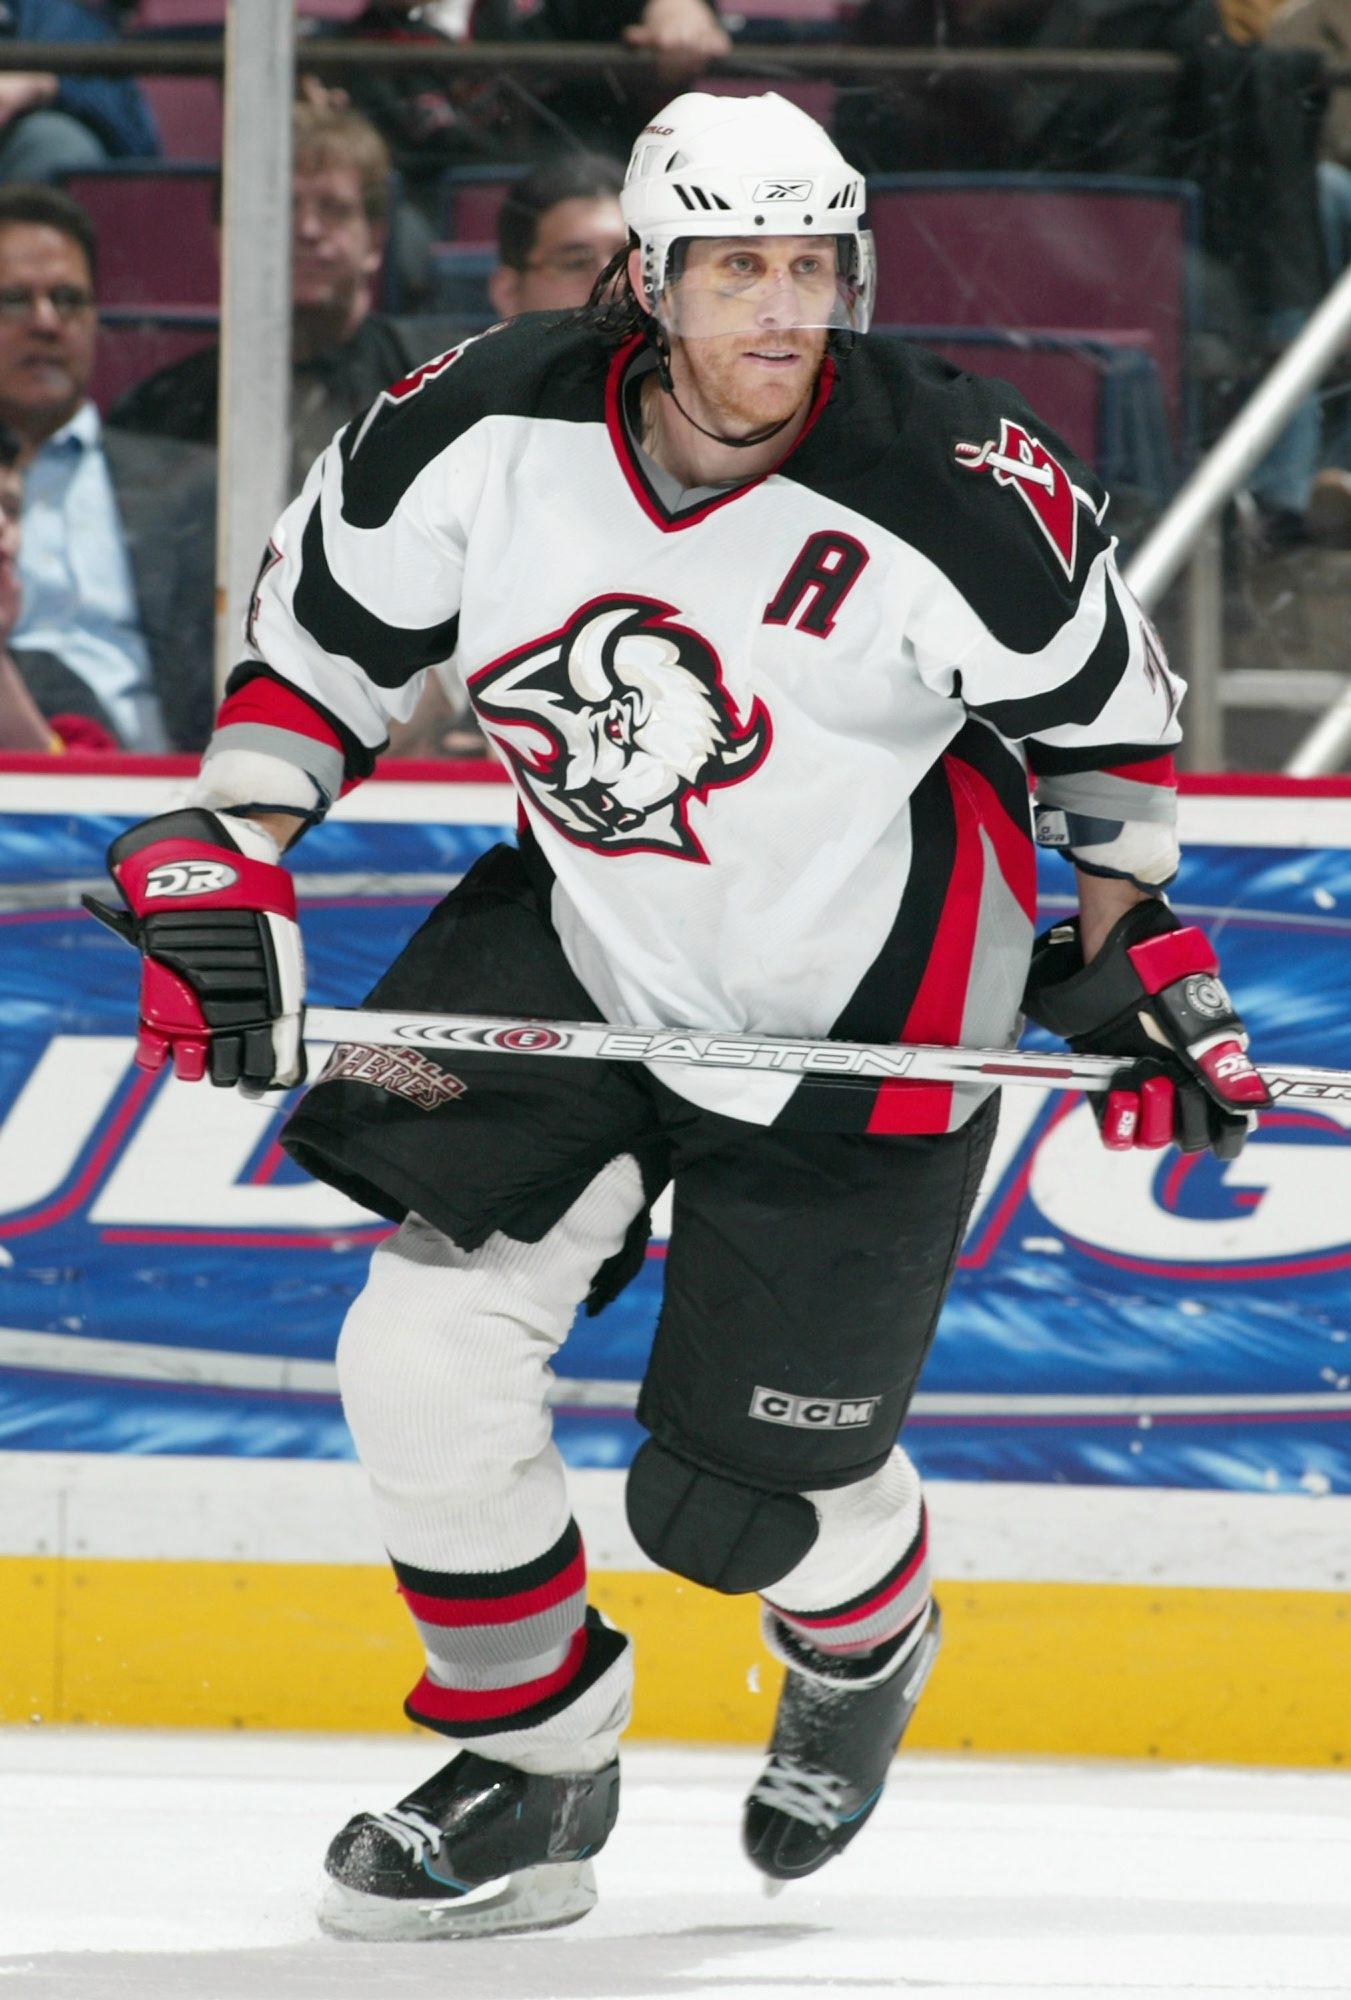 Former Sabres defenseman Jay McKee has been hired as an assistant coach for the Erie Otters of the Ontario Hockey League.